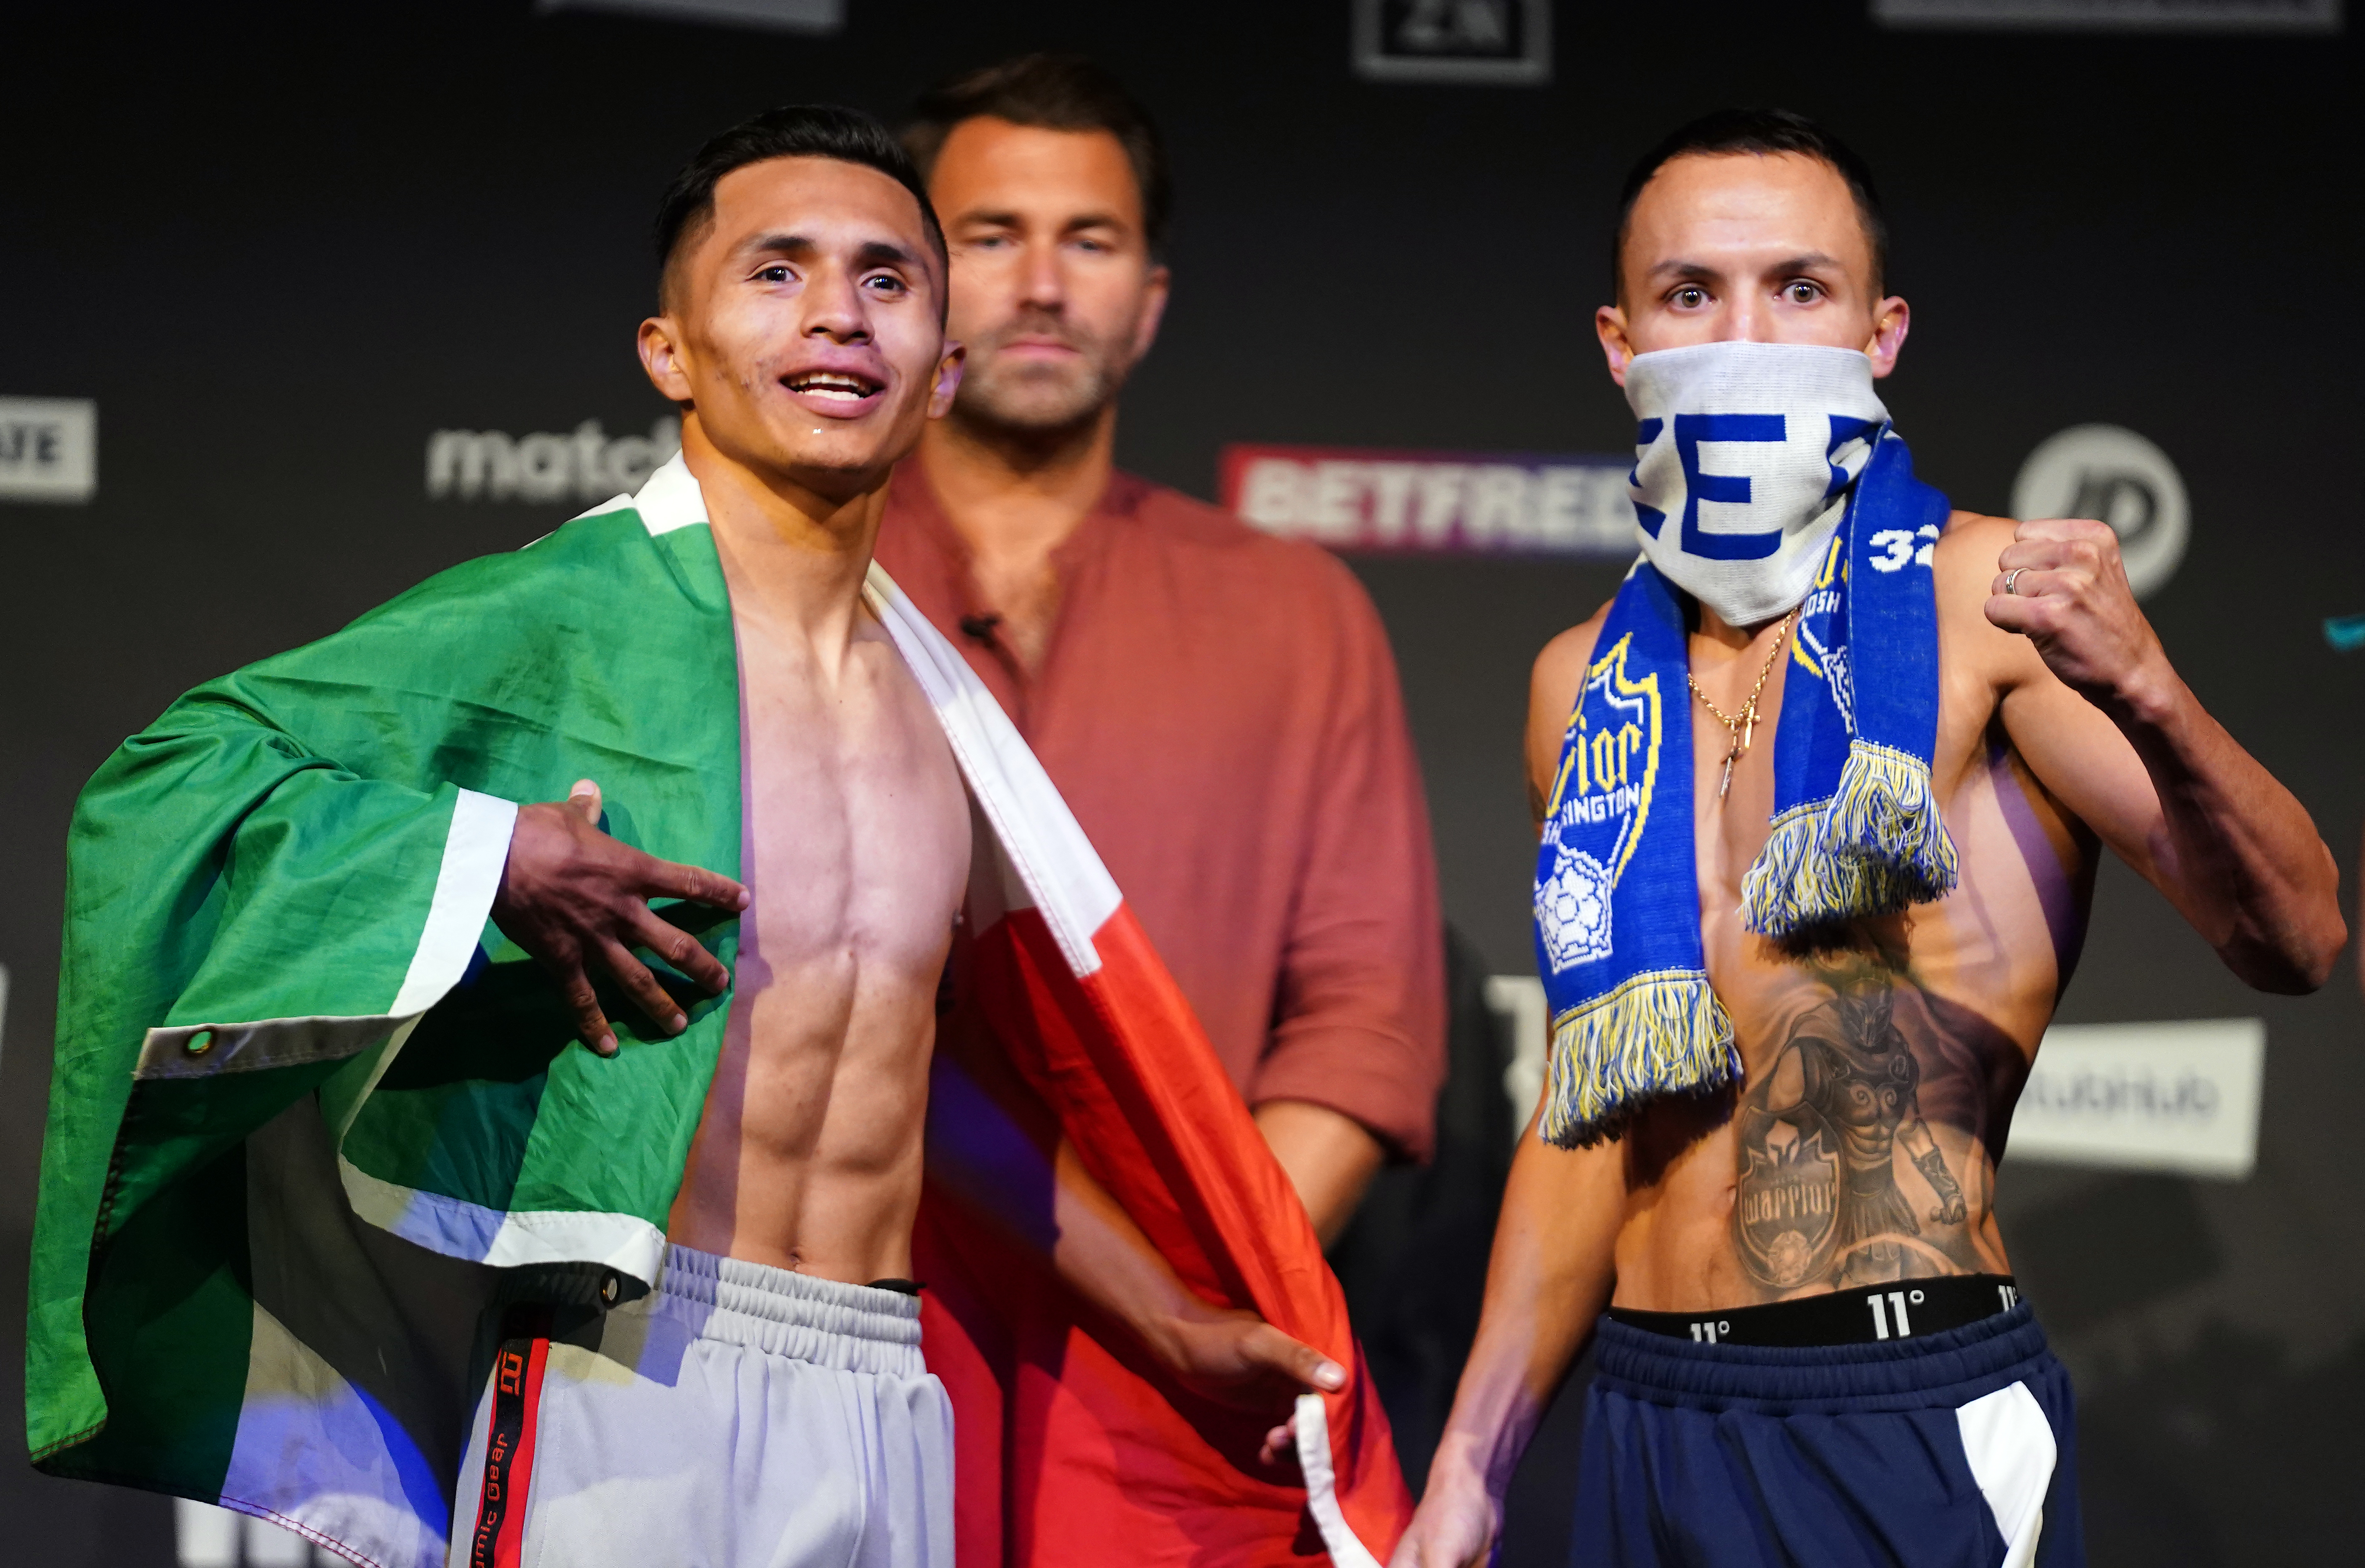 Josh Warrington (right) and Mauricio Lara during the weigh-in at the New Dock Hall, Leeds.